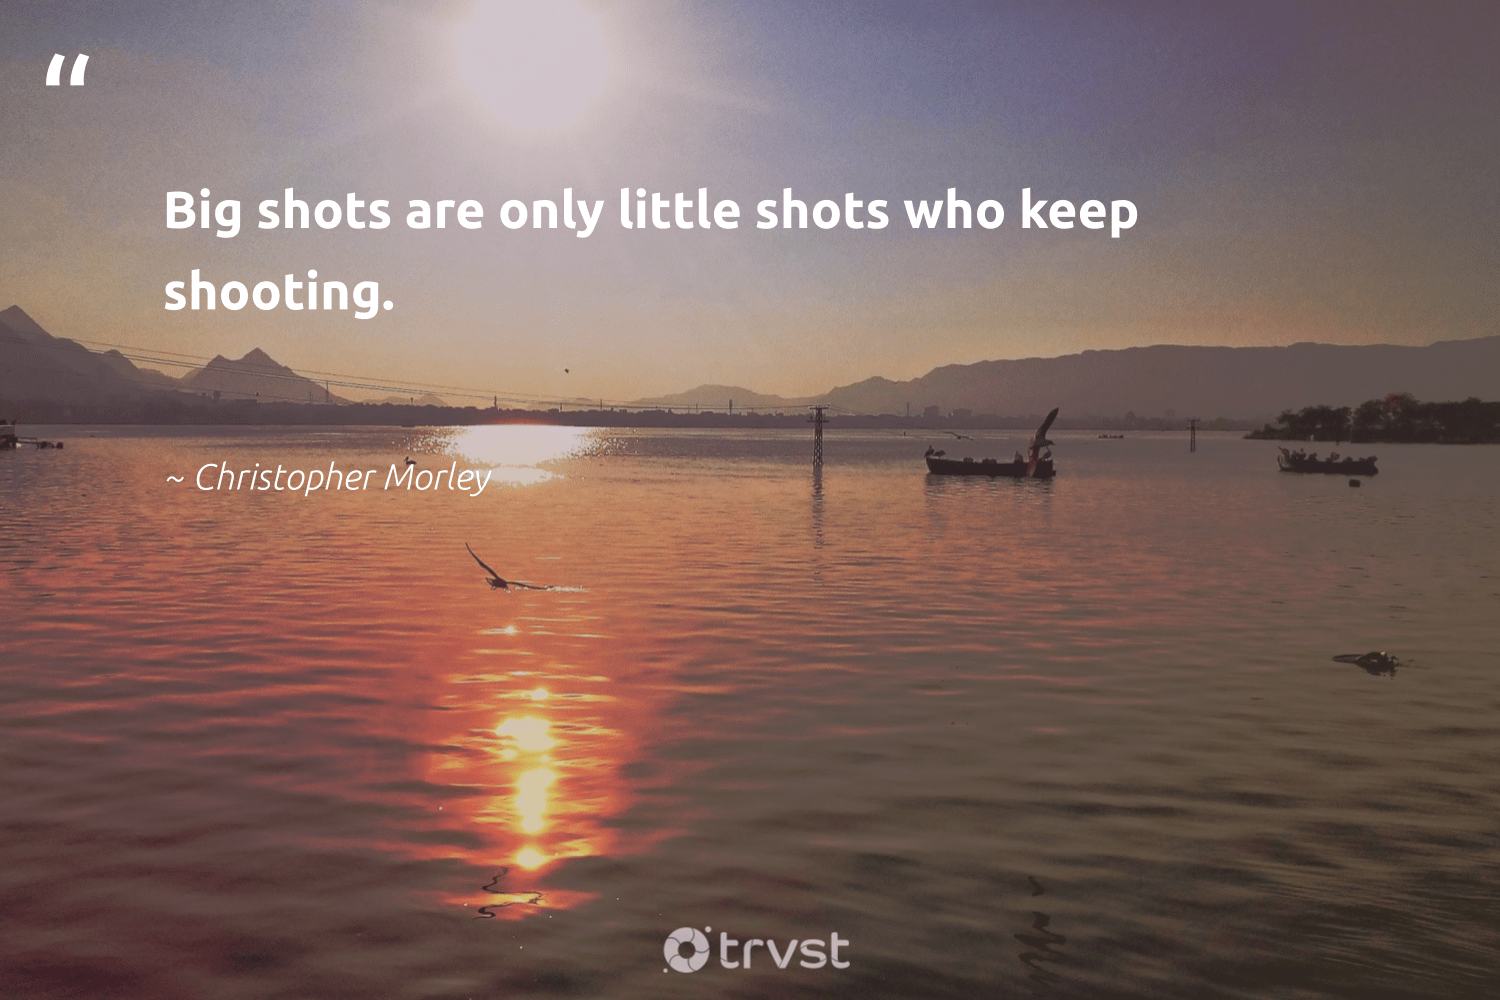 """Big shots are only little shots who keep shooting.""  - Christopher Morley #trvst #quotes #nevergiveup #collectiveaction #softskills #bethechange #begreat #socialchange #futureofwork #beinspired #dogood #thinkgreen"